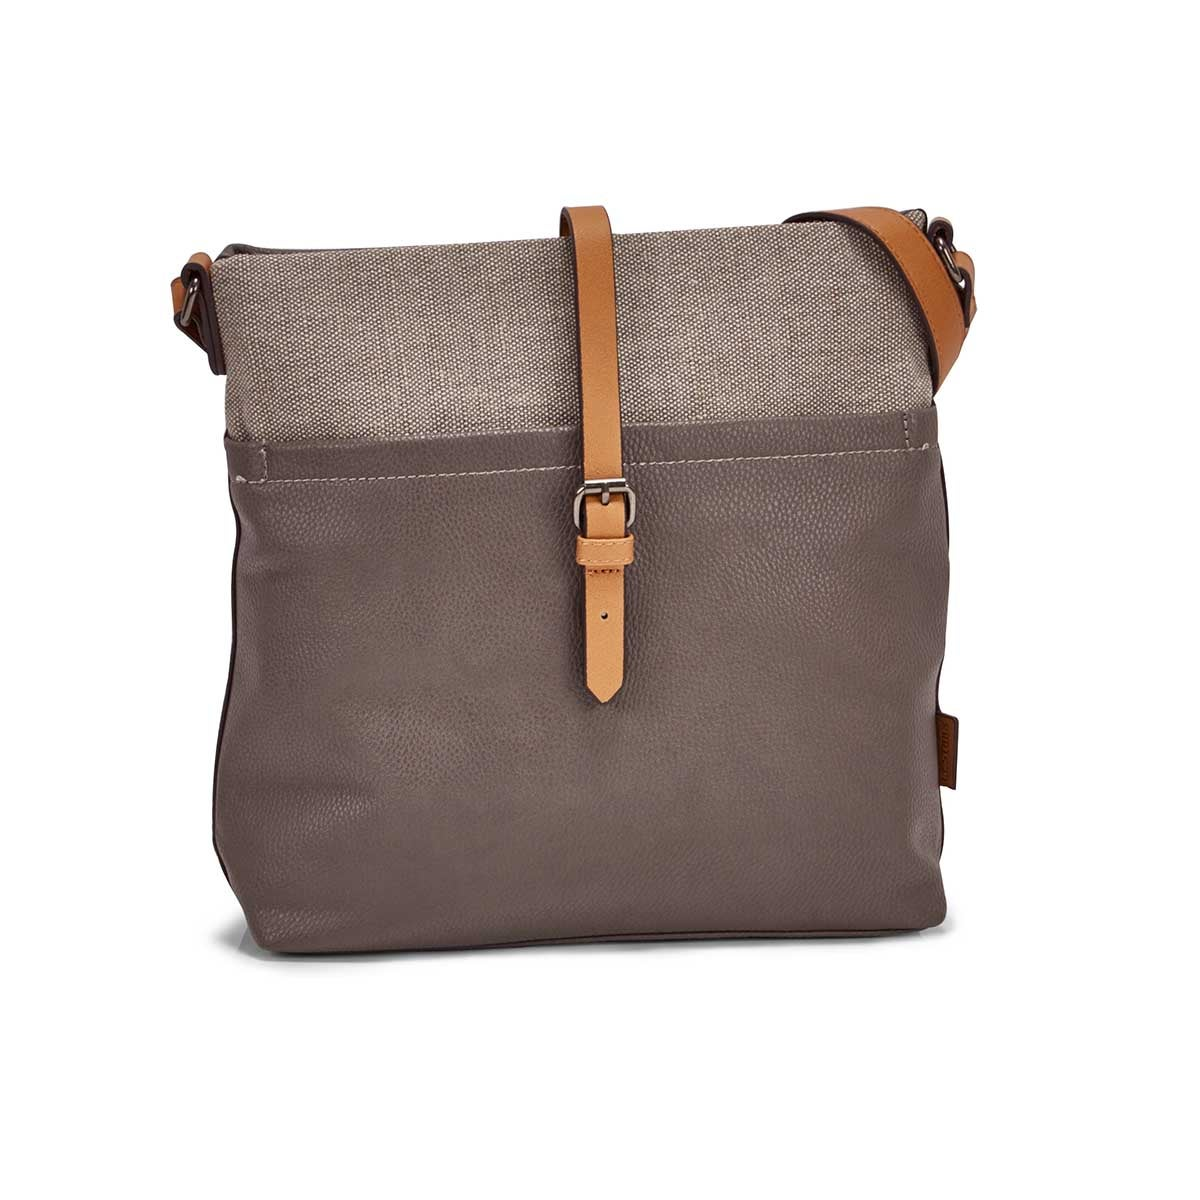 Women's R5530 NORTH/SOUTH taupe crossbody bag